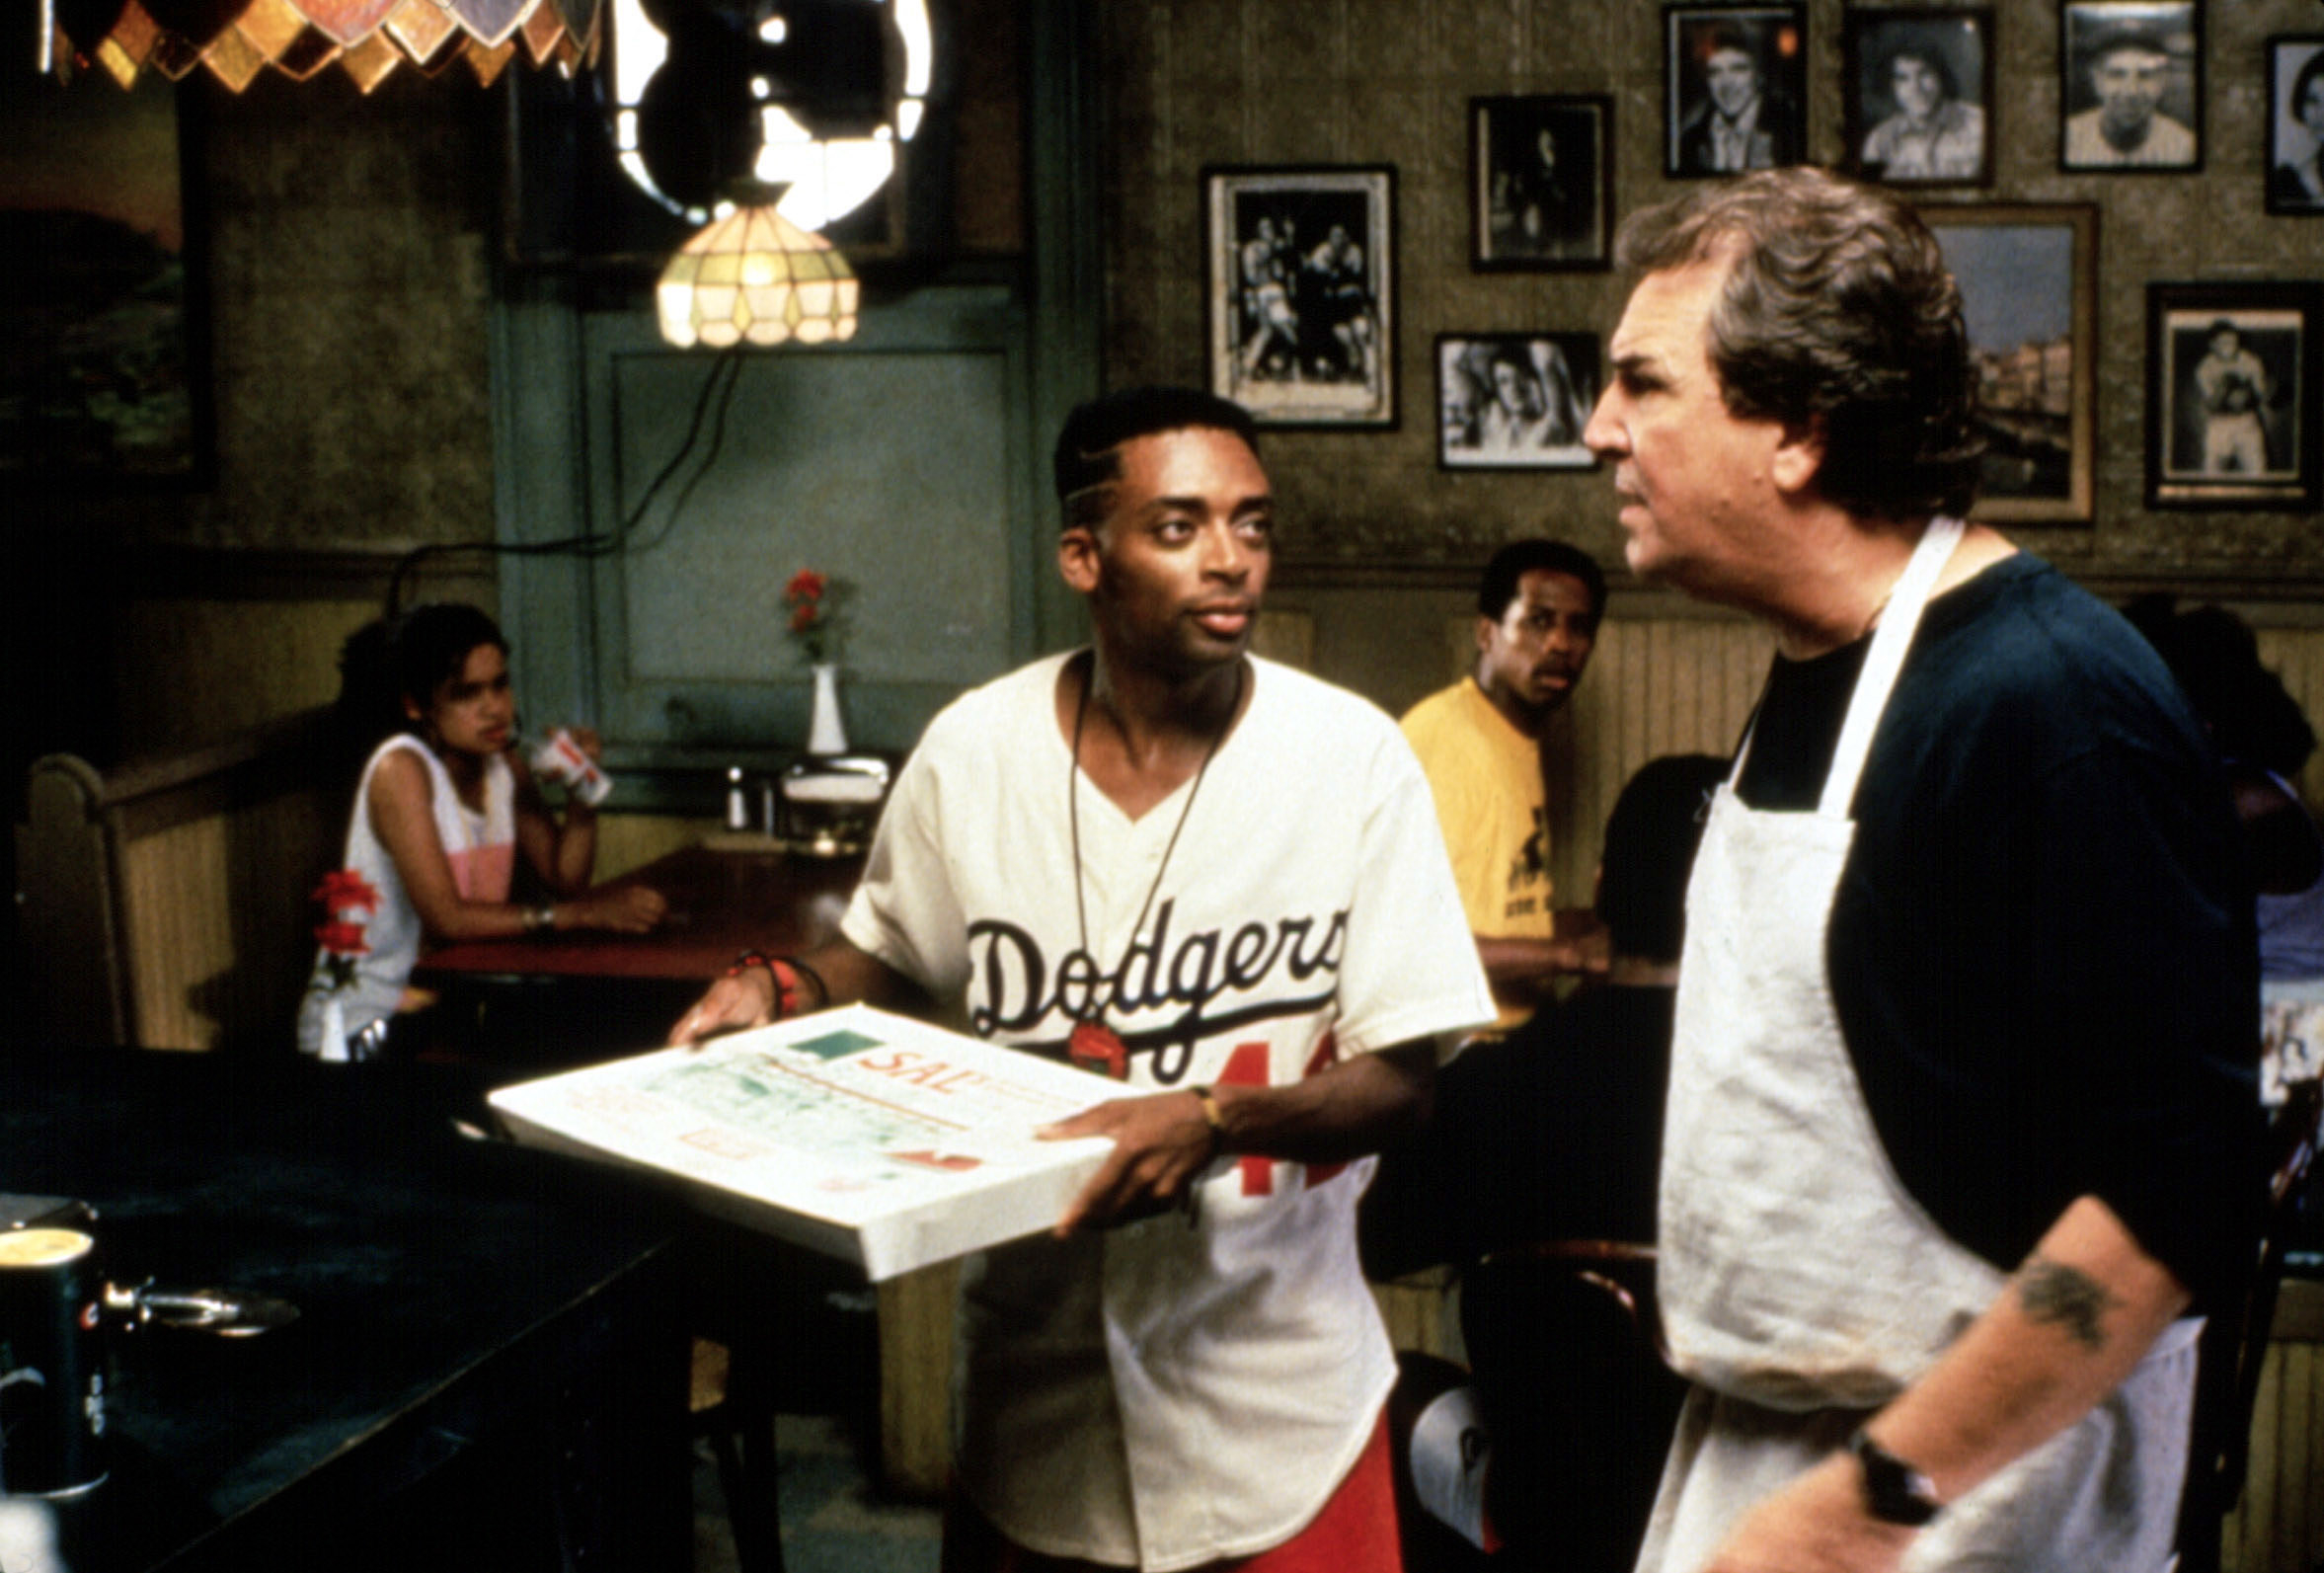 Spike Lee stands with a a pizza box talking to Danny Aiello